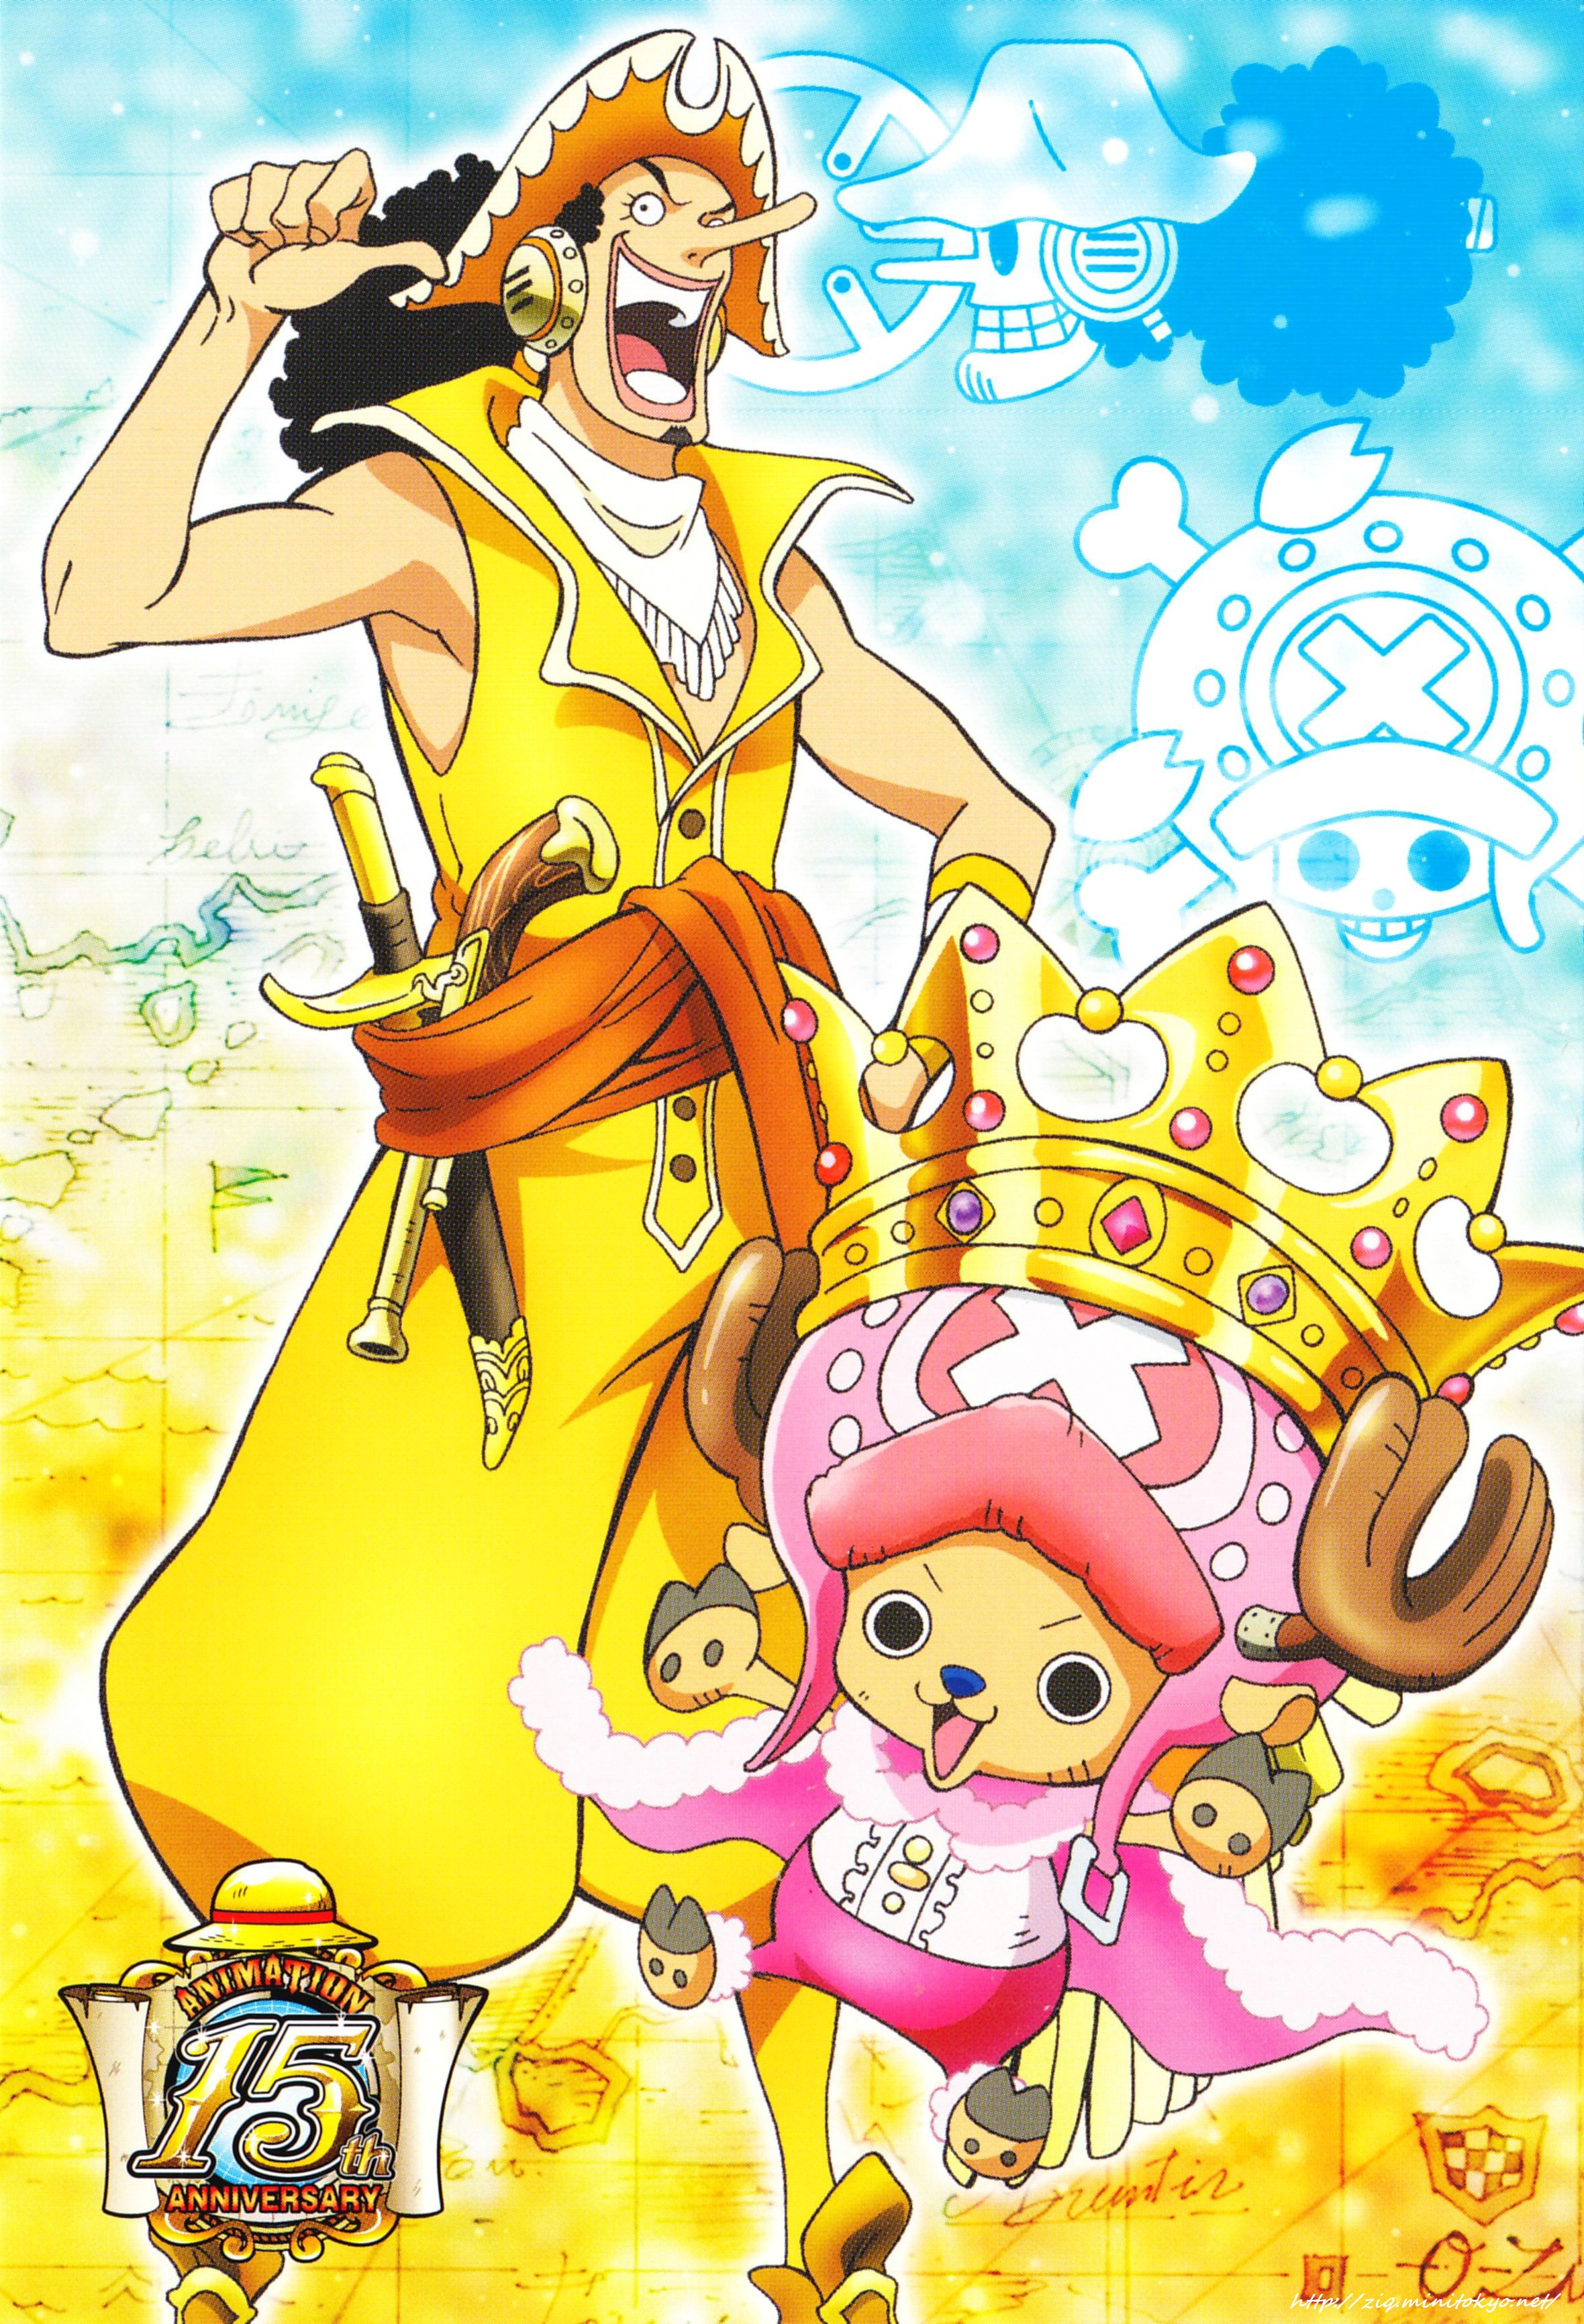 One piece two years later image 1736819 zerochan anime image board - Toei animation one piece ...